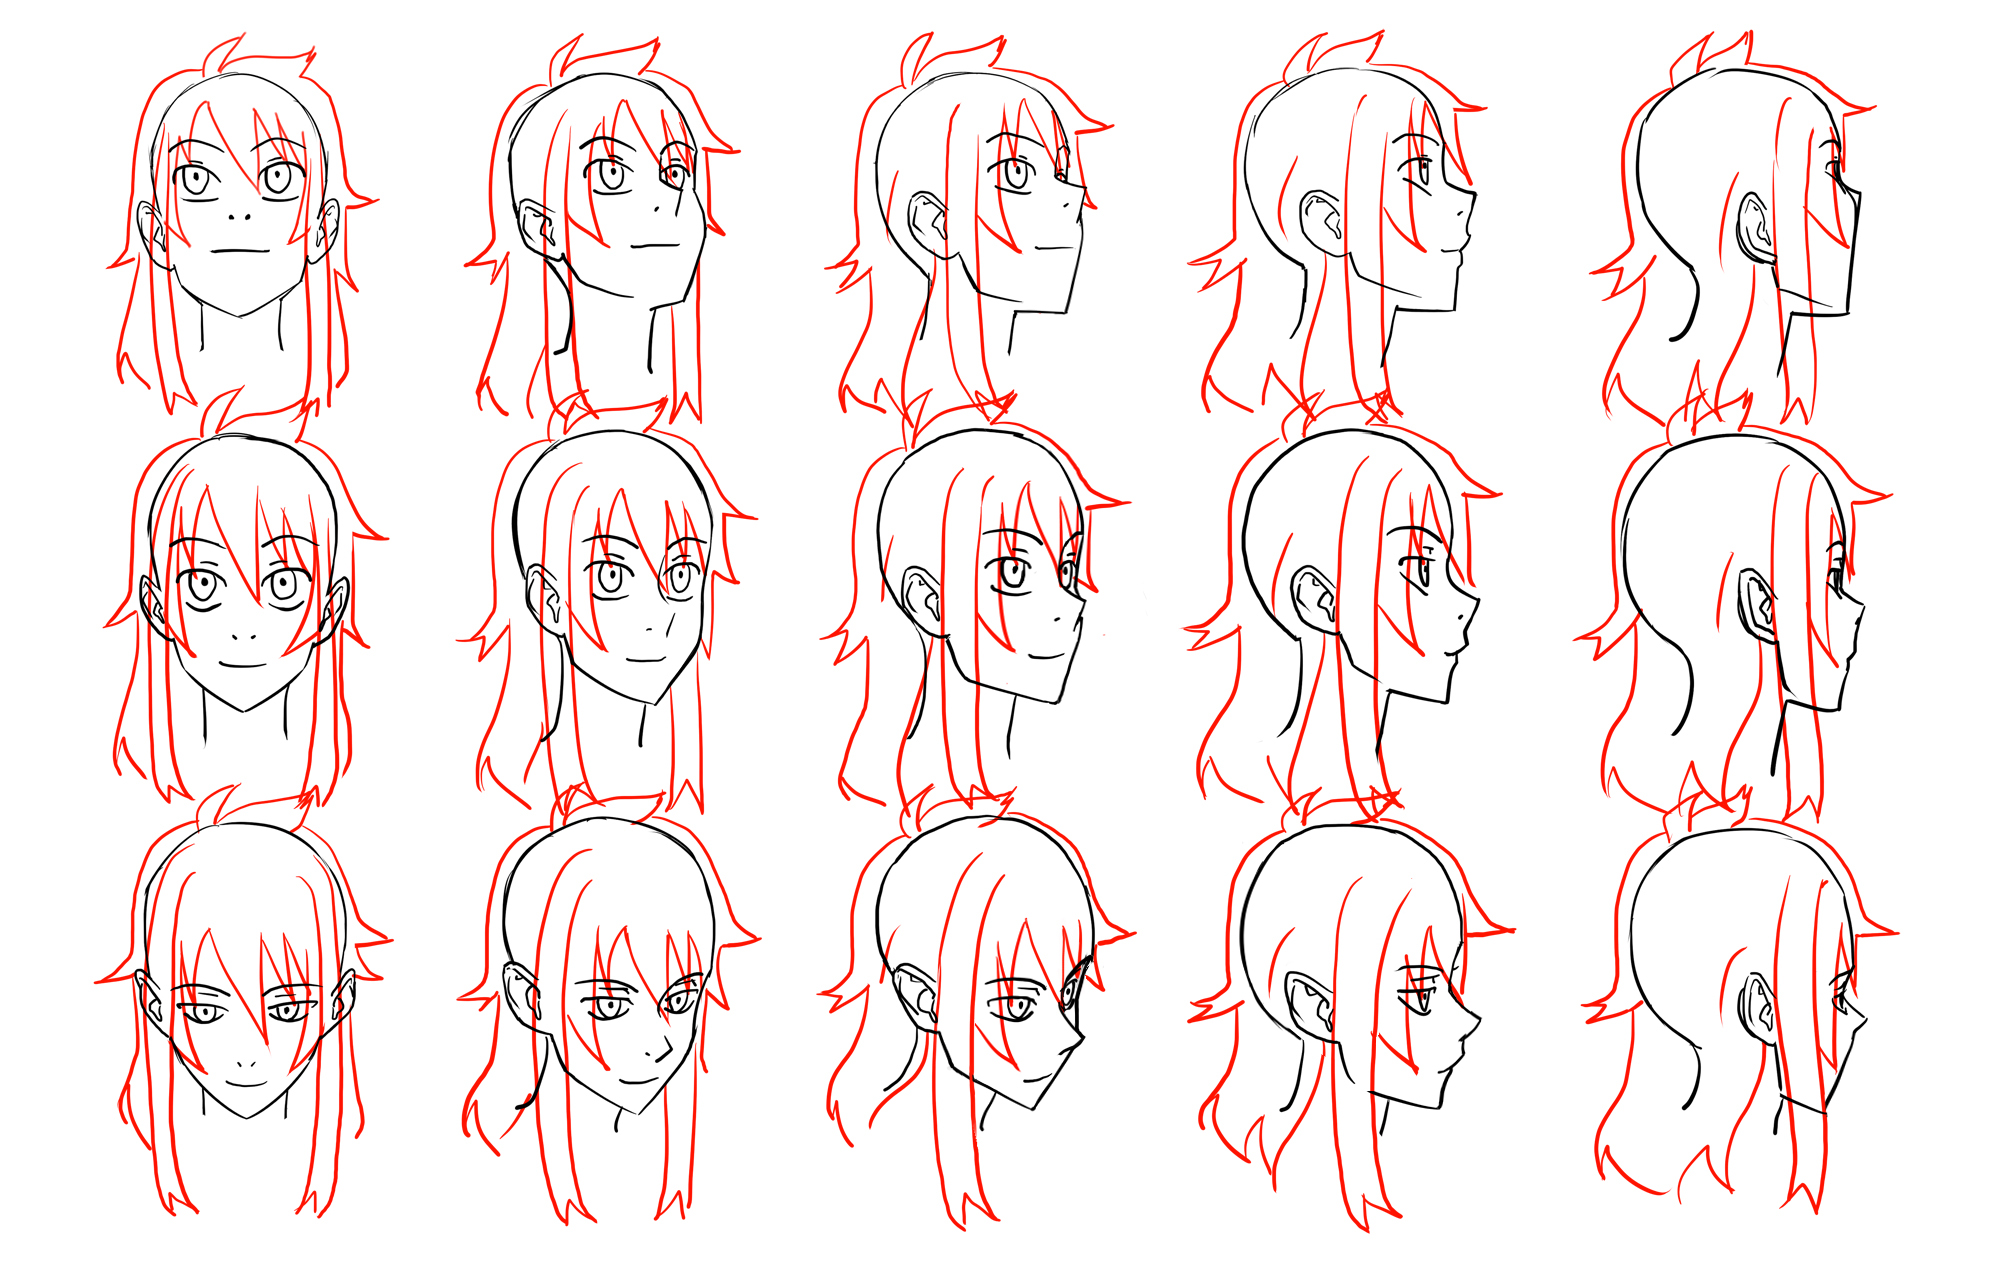 2000x1280 Anime Head Reference Image Anime Head Angles Head Reference